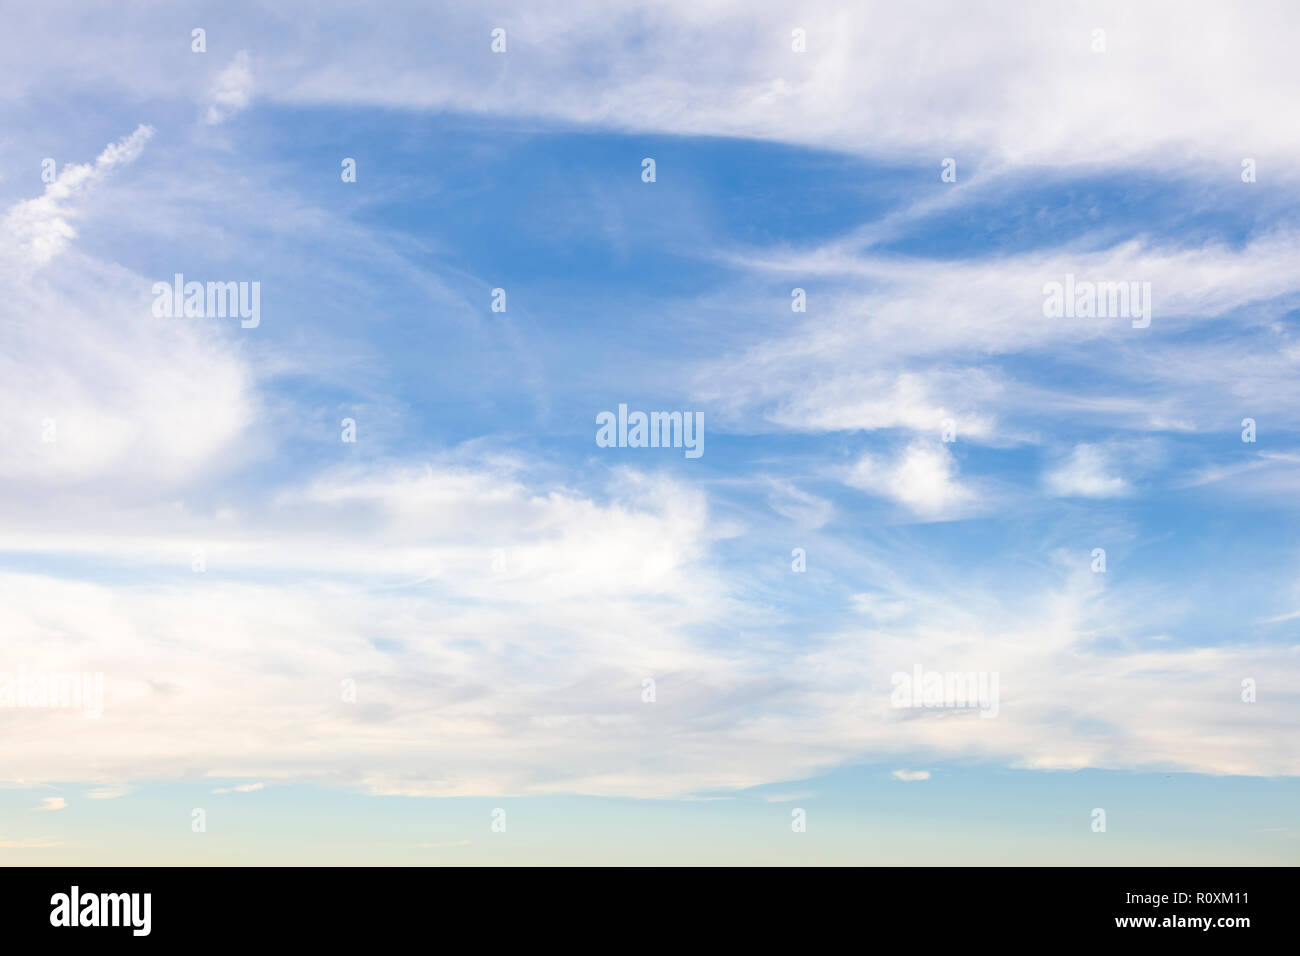 Wispy white clouds in a blue sky over the Gulf of Mexico in southwest Florida, United States - Stock Image